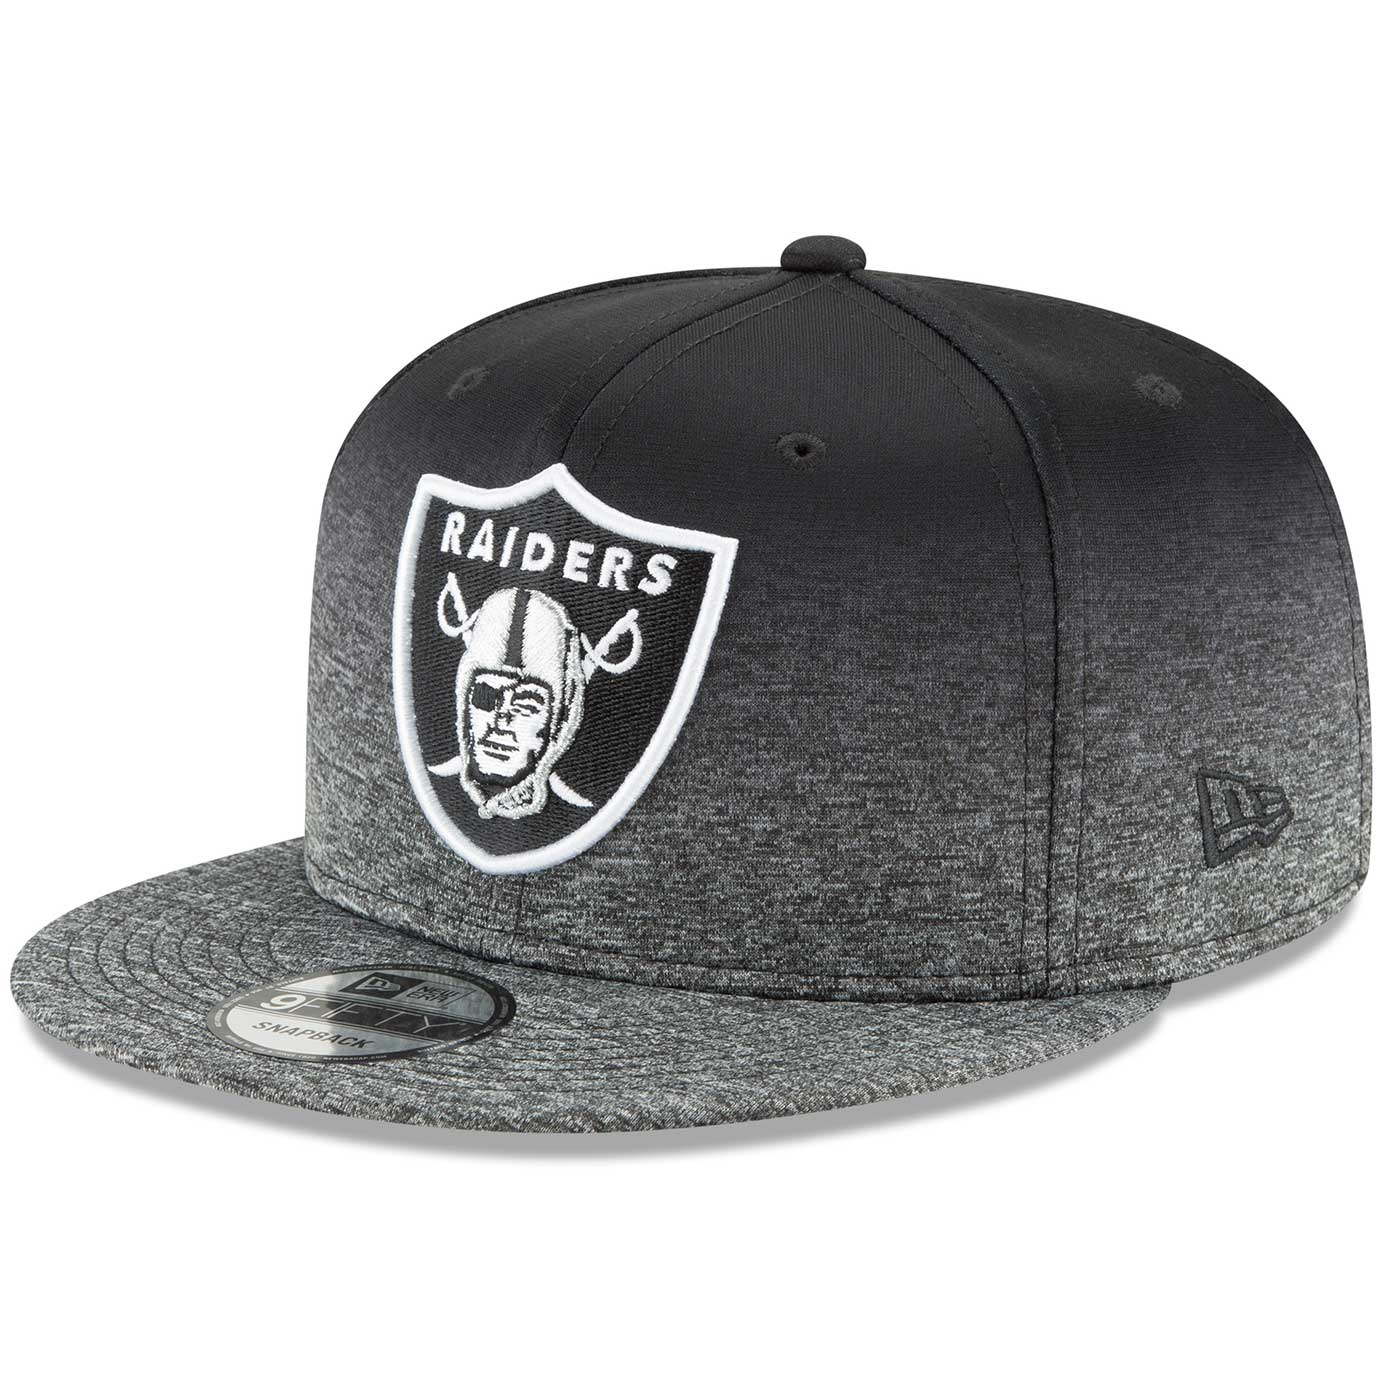 Raiders New Era 9Fifty Shadow Fade Cap d0b399ea6c33